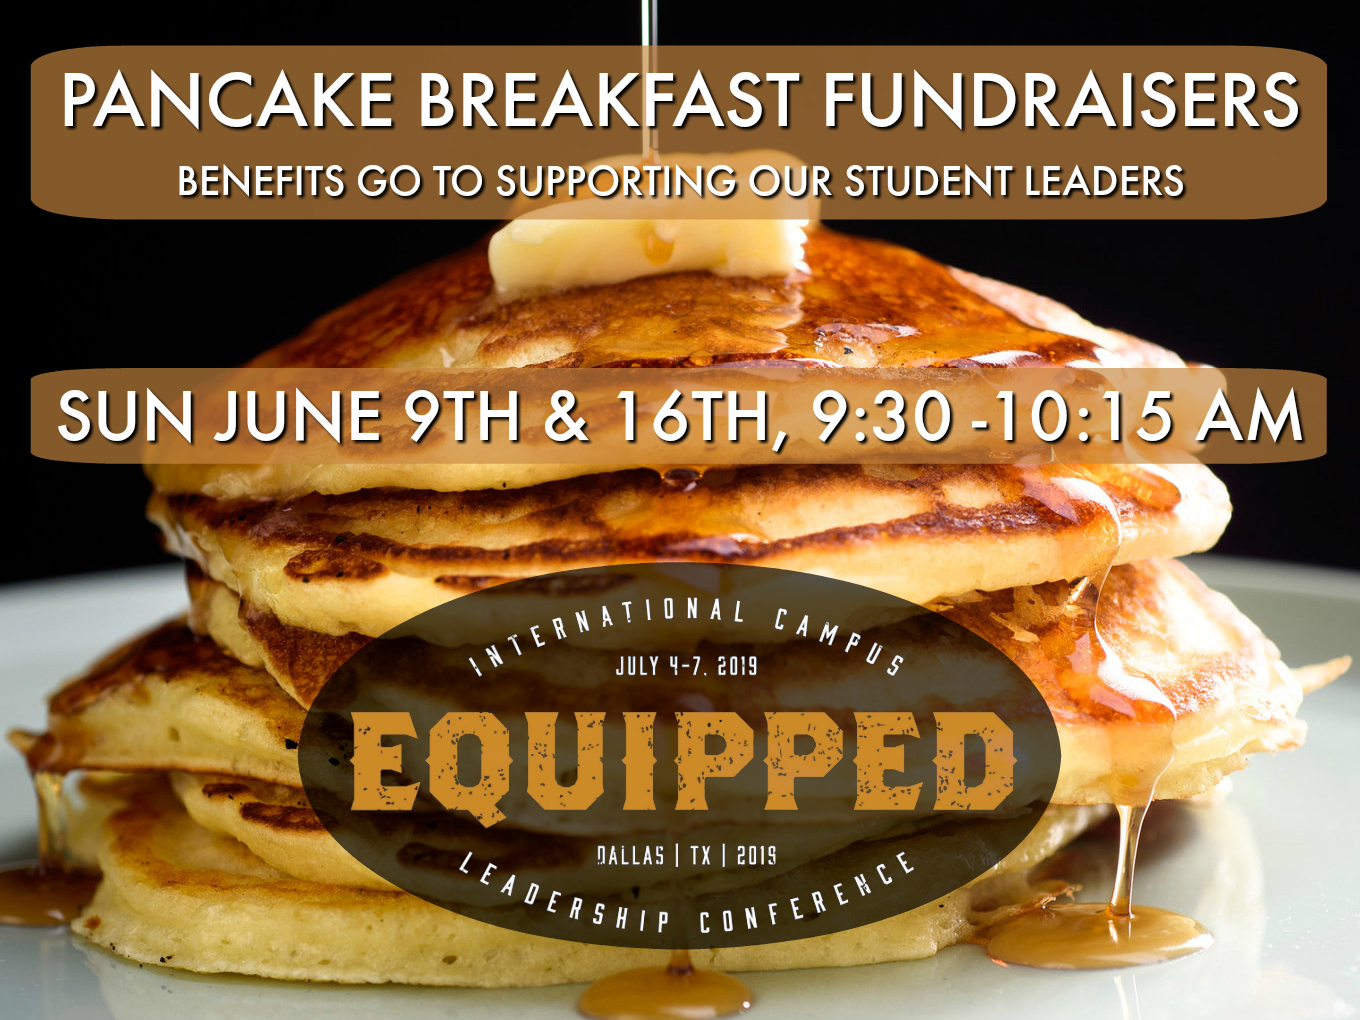 Pancake Breakfast Fundraiser Slide (4x3).jpg